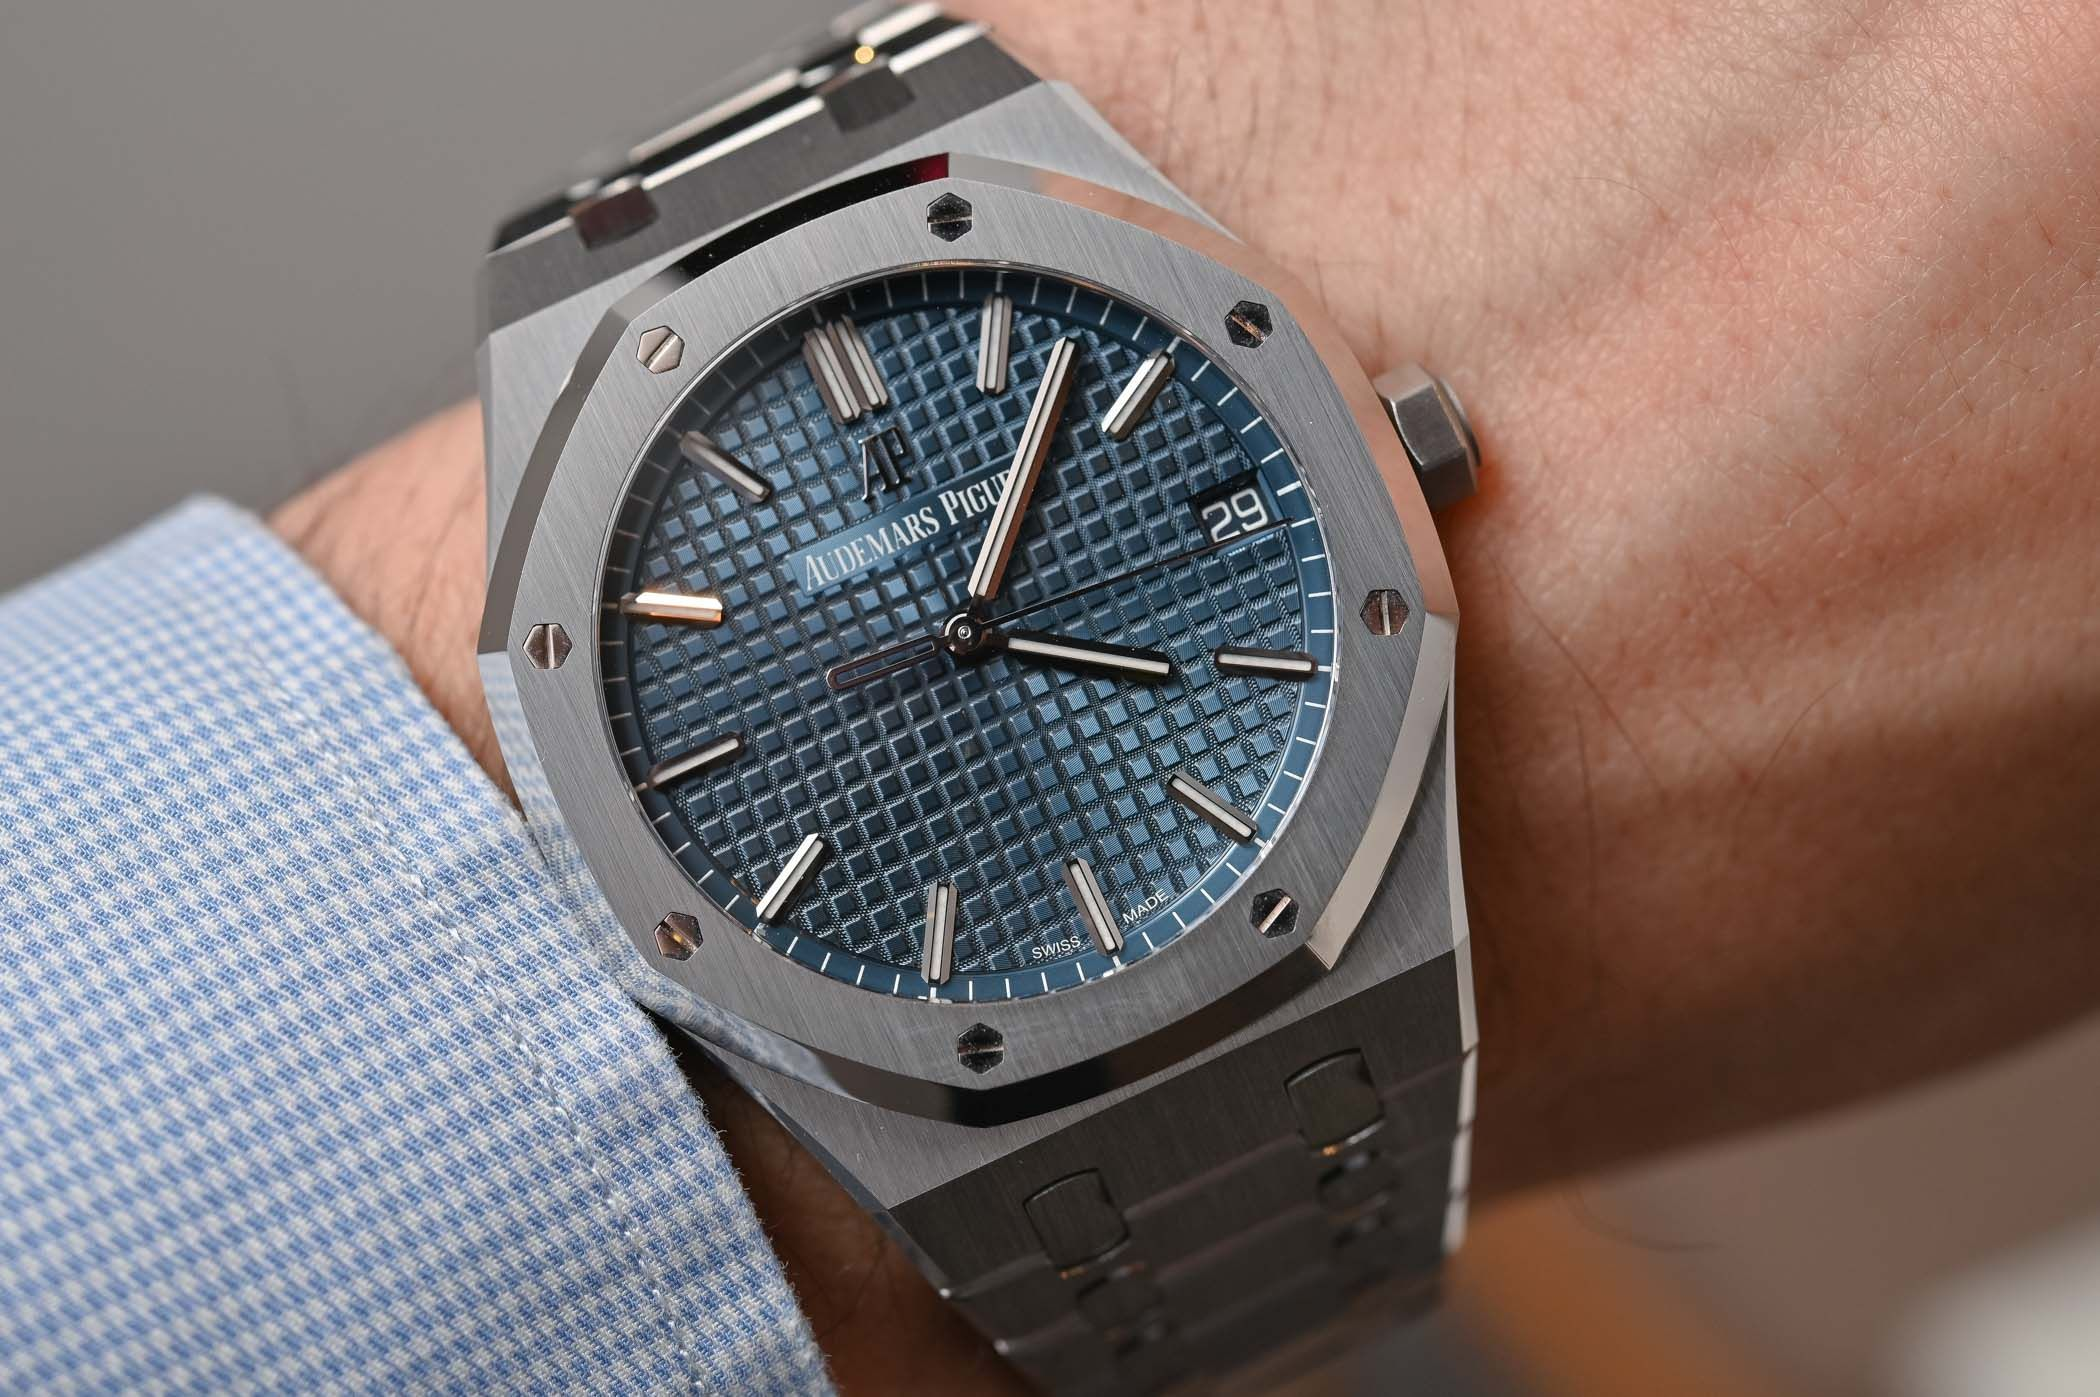 Hands-On Review - Audemars Piguet Royal Oak Selfwinding 41mm 15500ST (Specs  & Price) | Audemars piguet royal oak, Audemars piguet, Luxury watches for  men